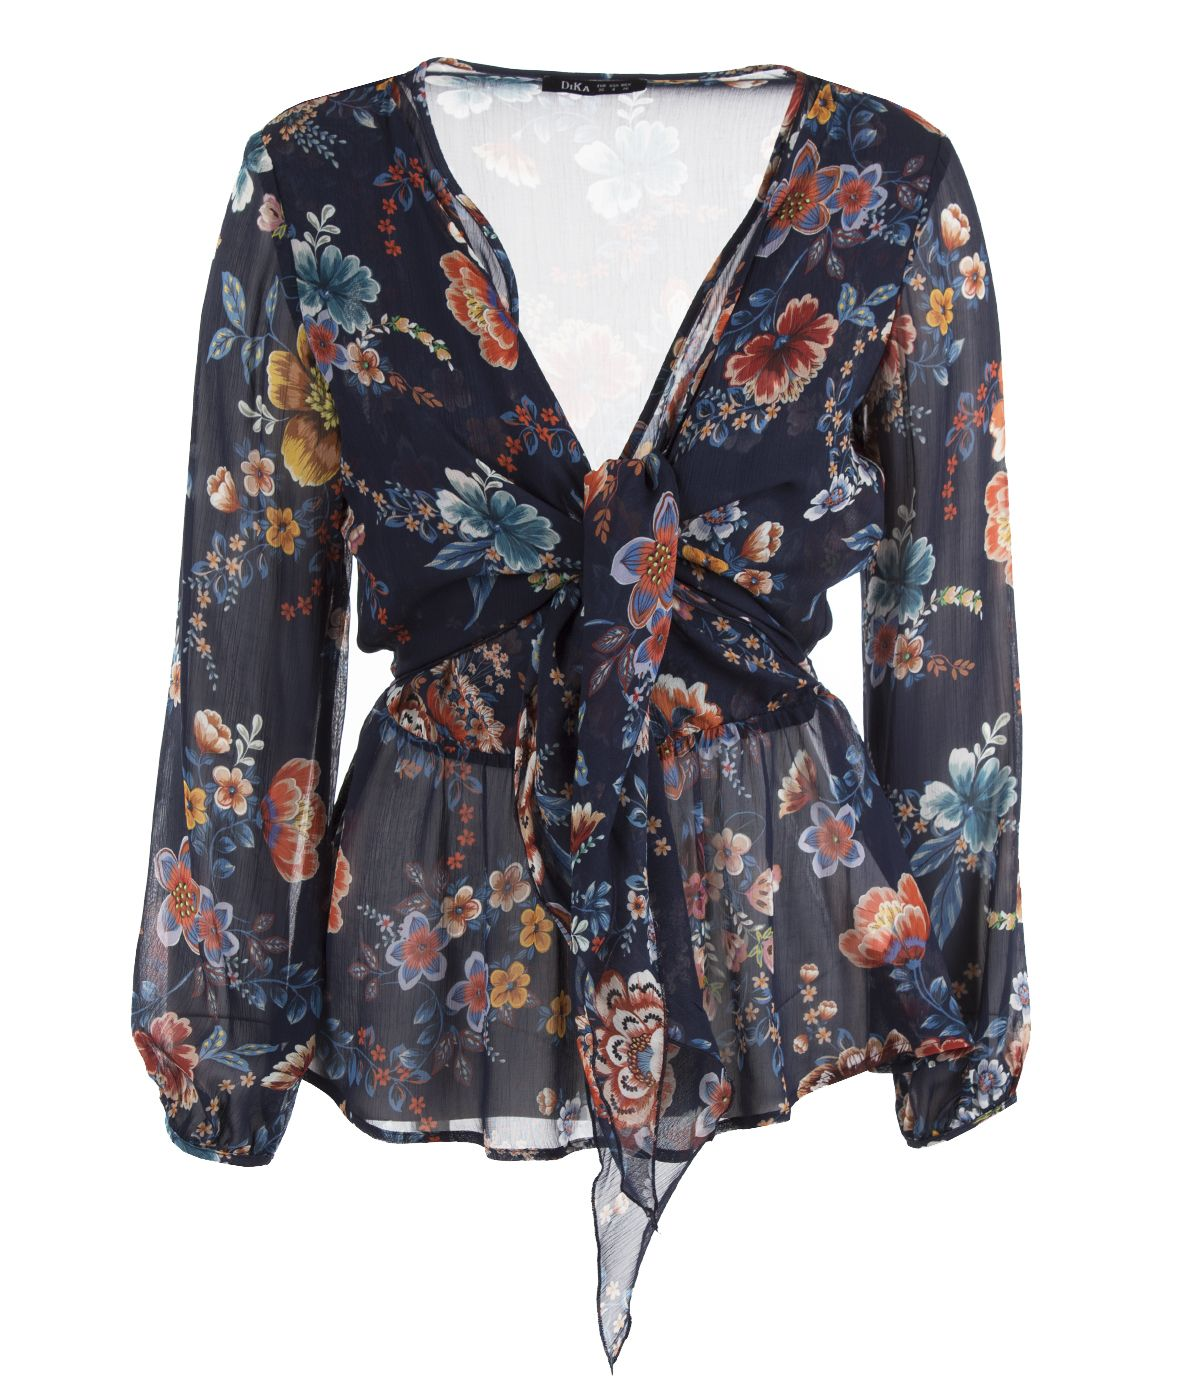 V-neckline blouse with tie-waist cut, 100% rayon, flower print 0